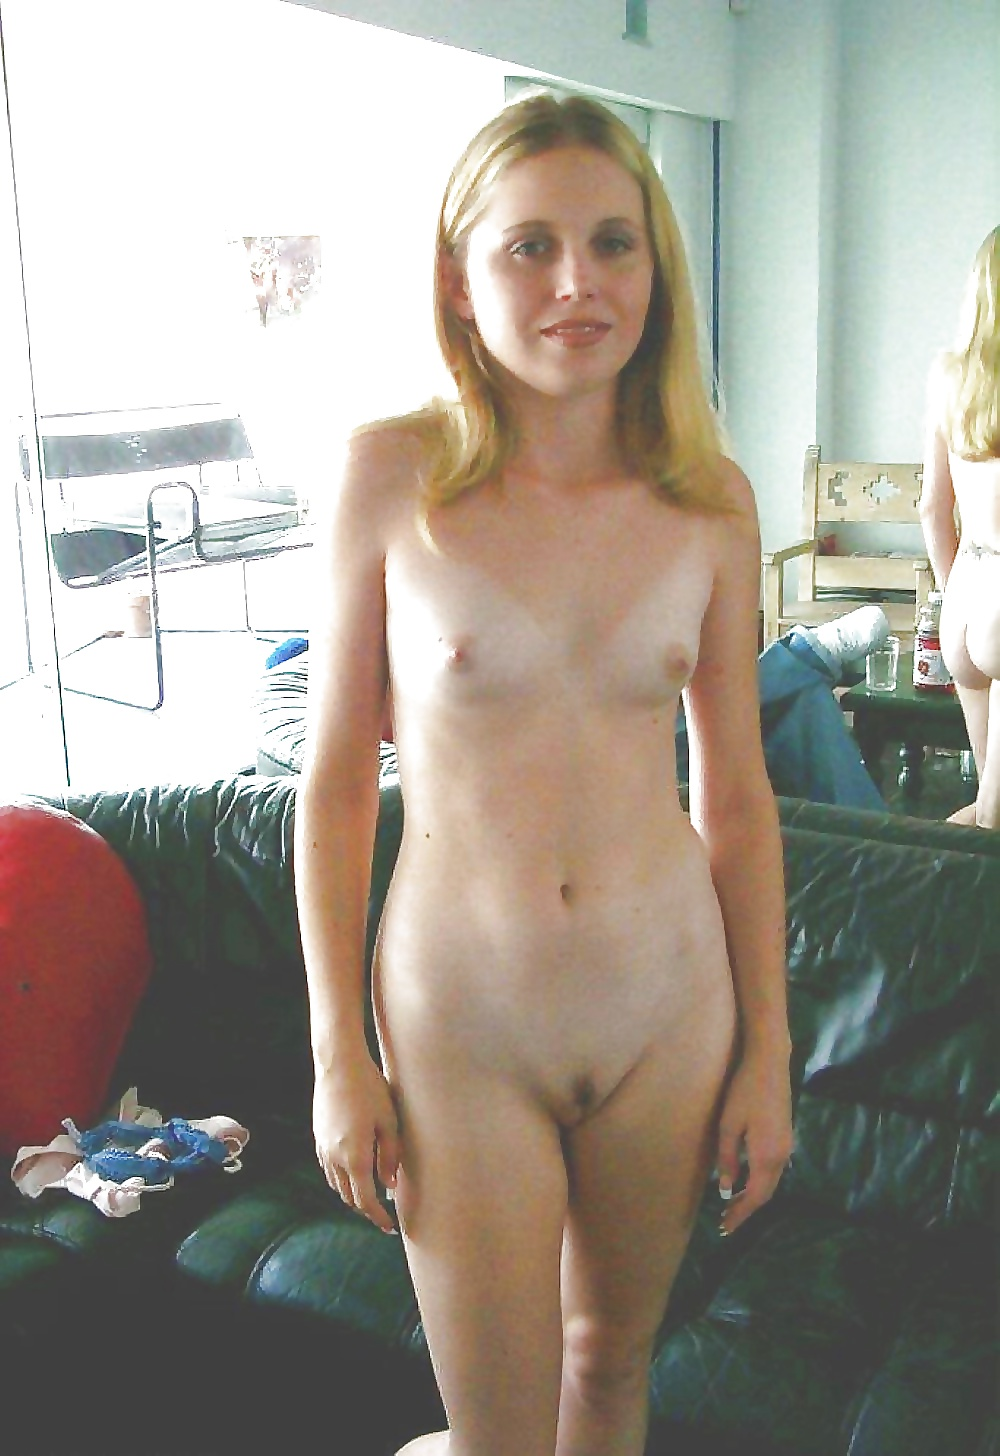 chicano girl naked handjob stepdad